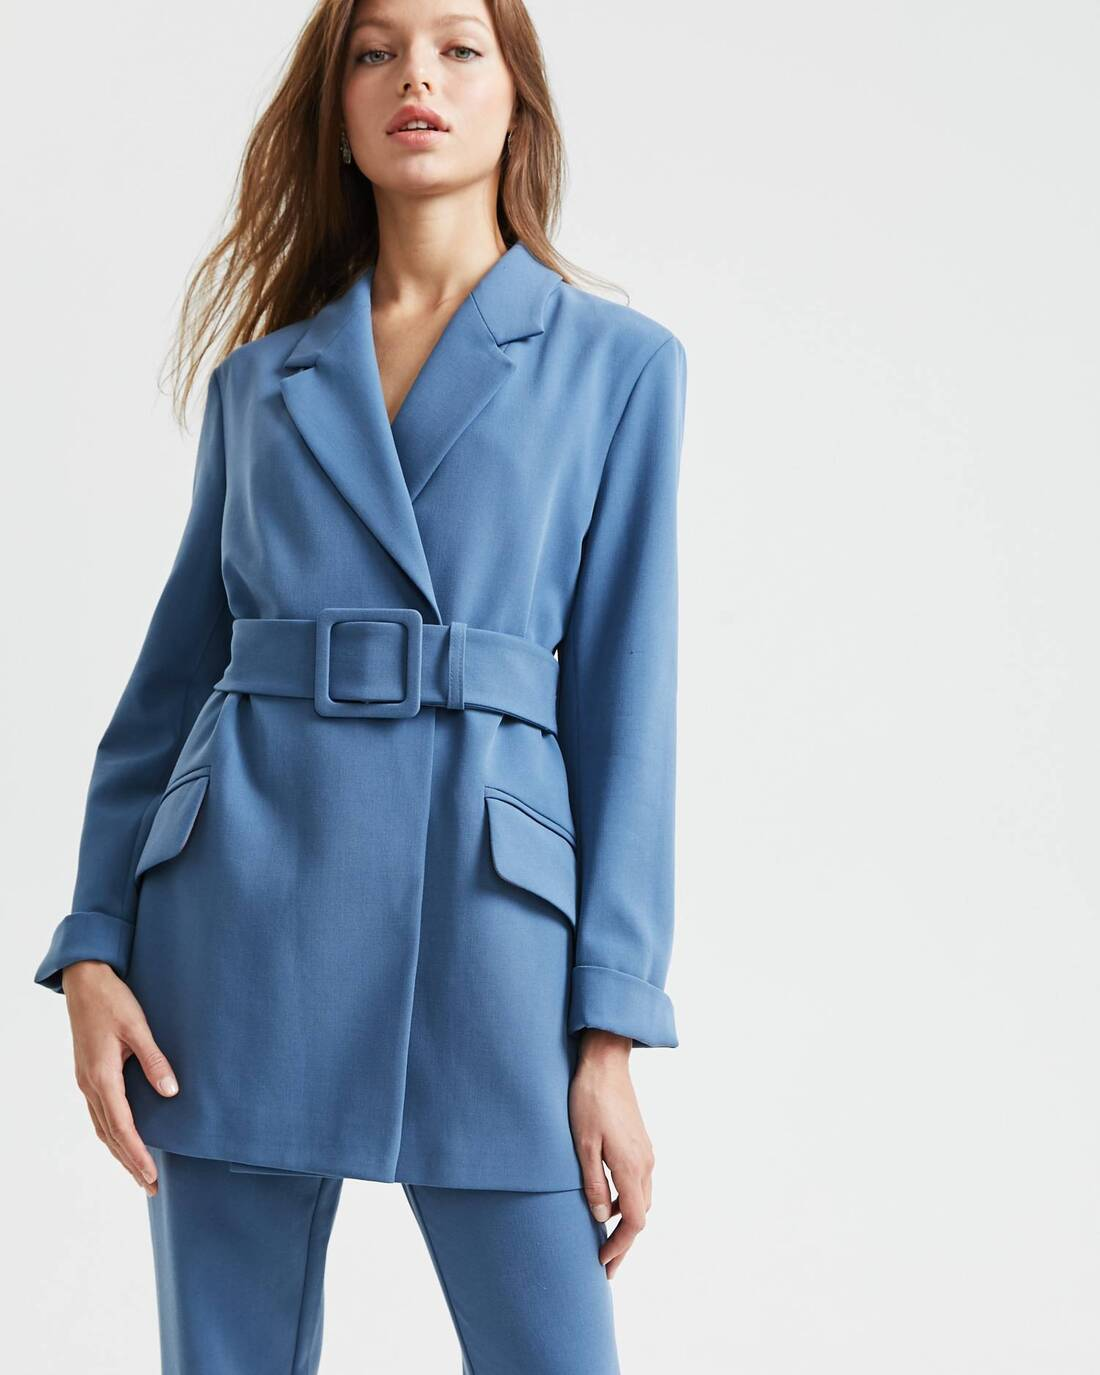 Belted two-piece suit